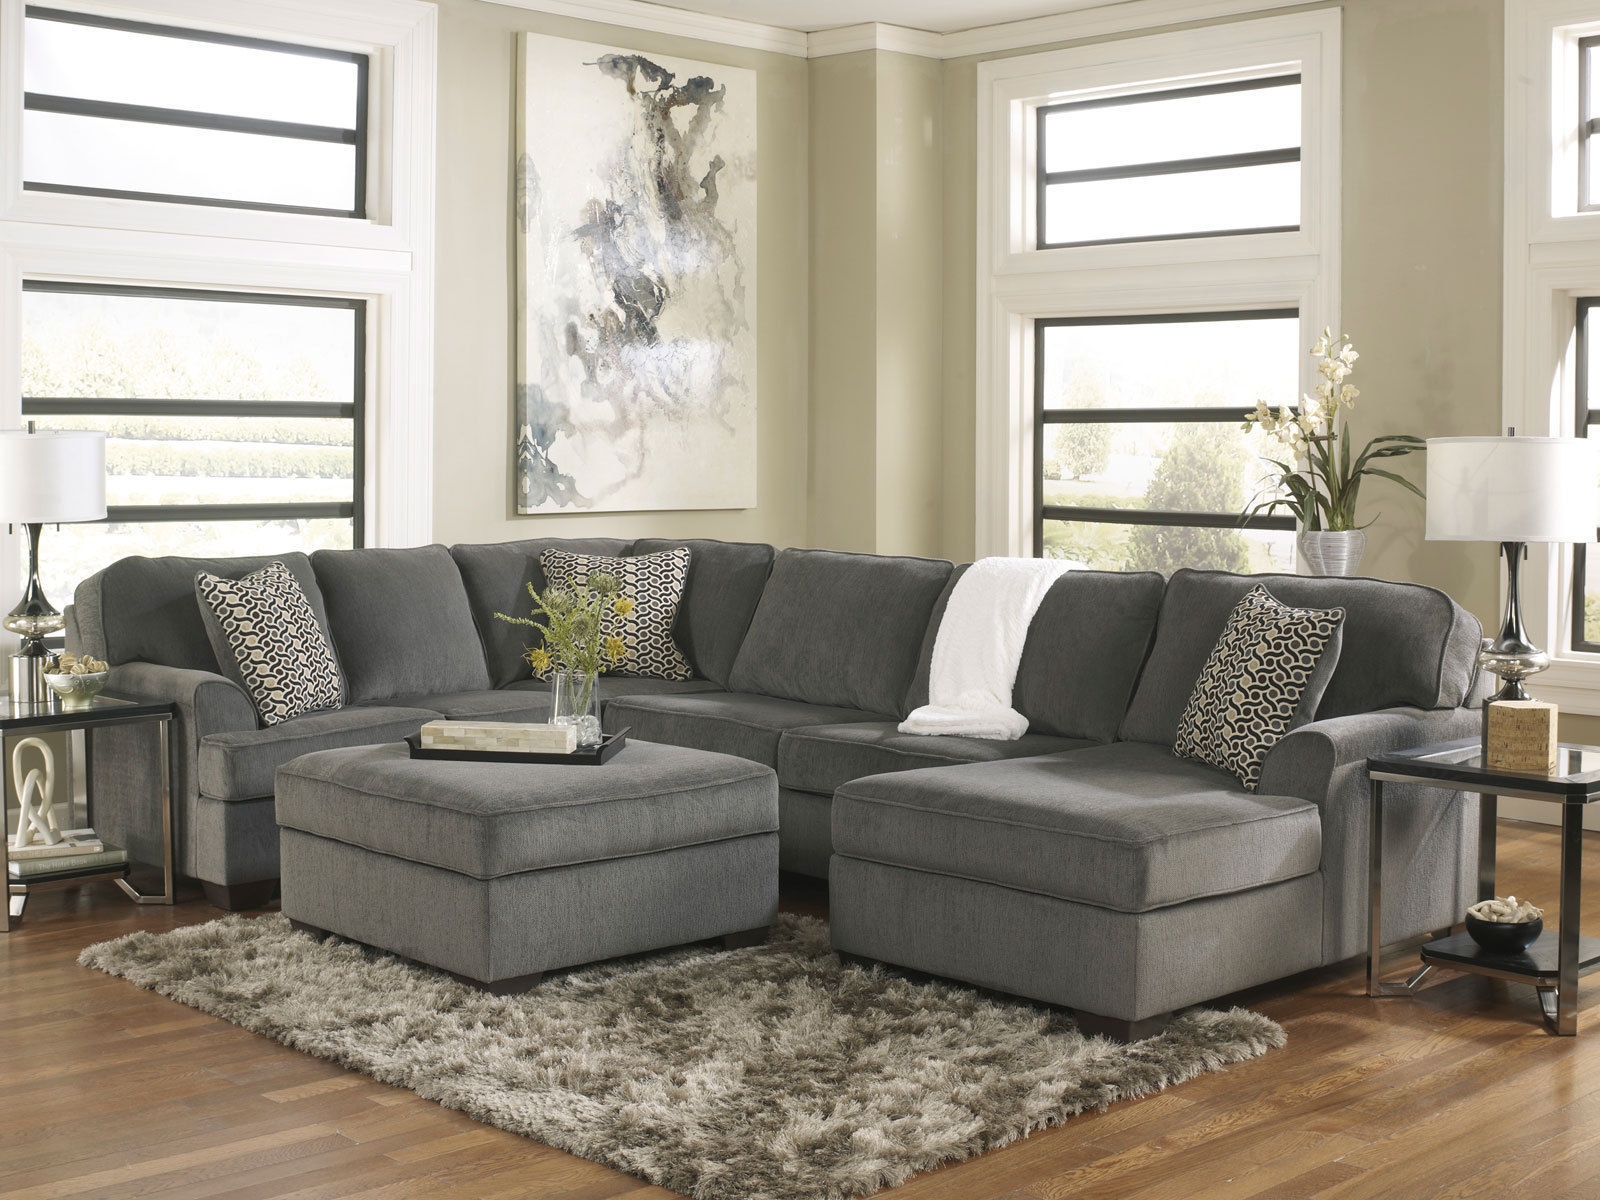 Soleoversized Modern Gray Fabric Sofa Couch Sectional Set